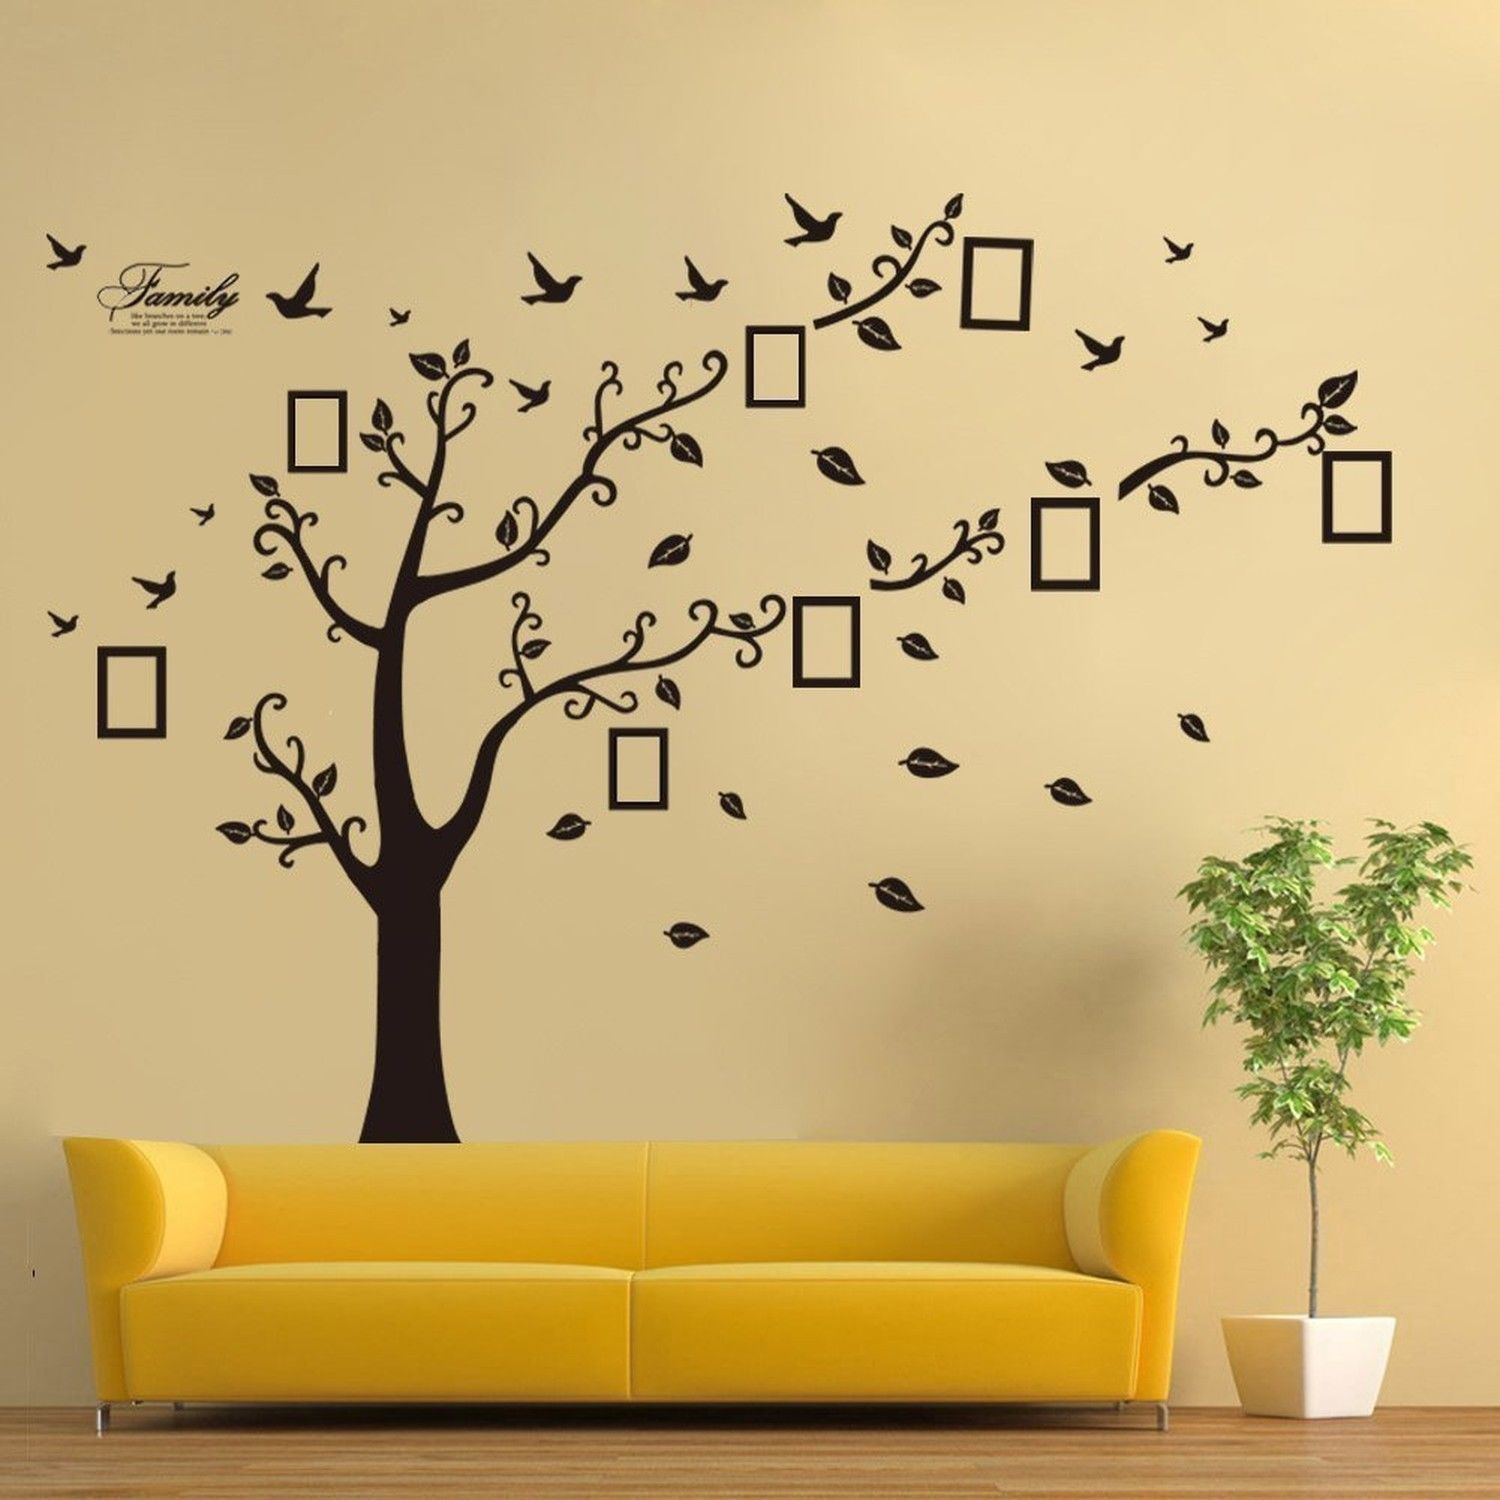 Family Tree Wall Decal Mural Photo Gallery Sticker Art Home Decor ...